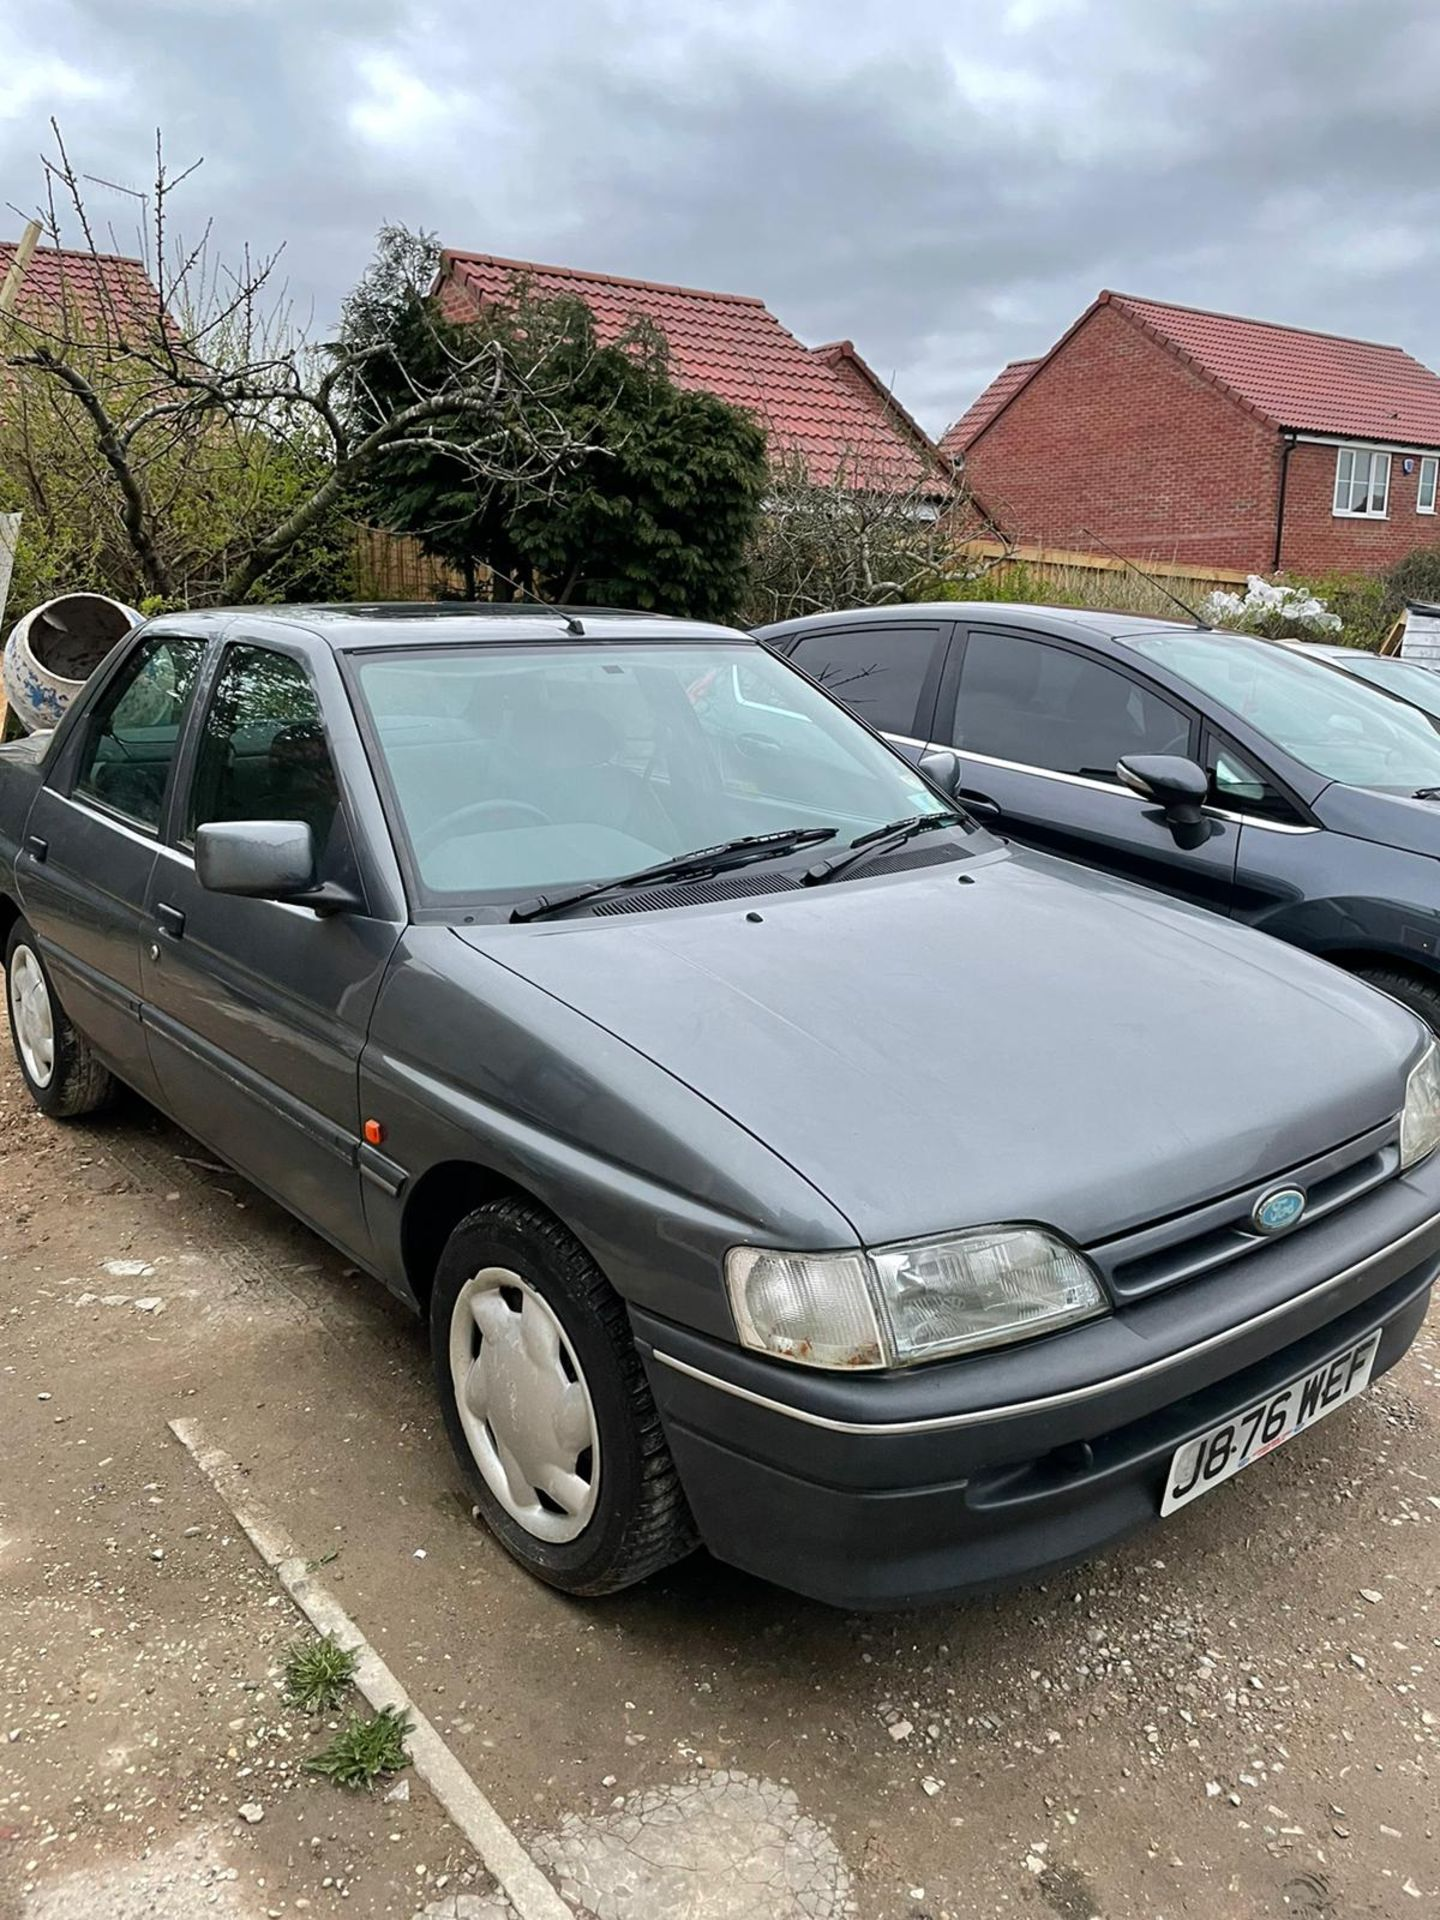 1992 FORD ORION LX AUTO, GREY, PETROL, AUTO VARIABLE 1 GEARS, 4 PREVIOUS KEEPERS, NO VAT - Image 2 of 8